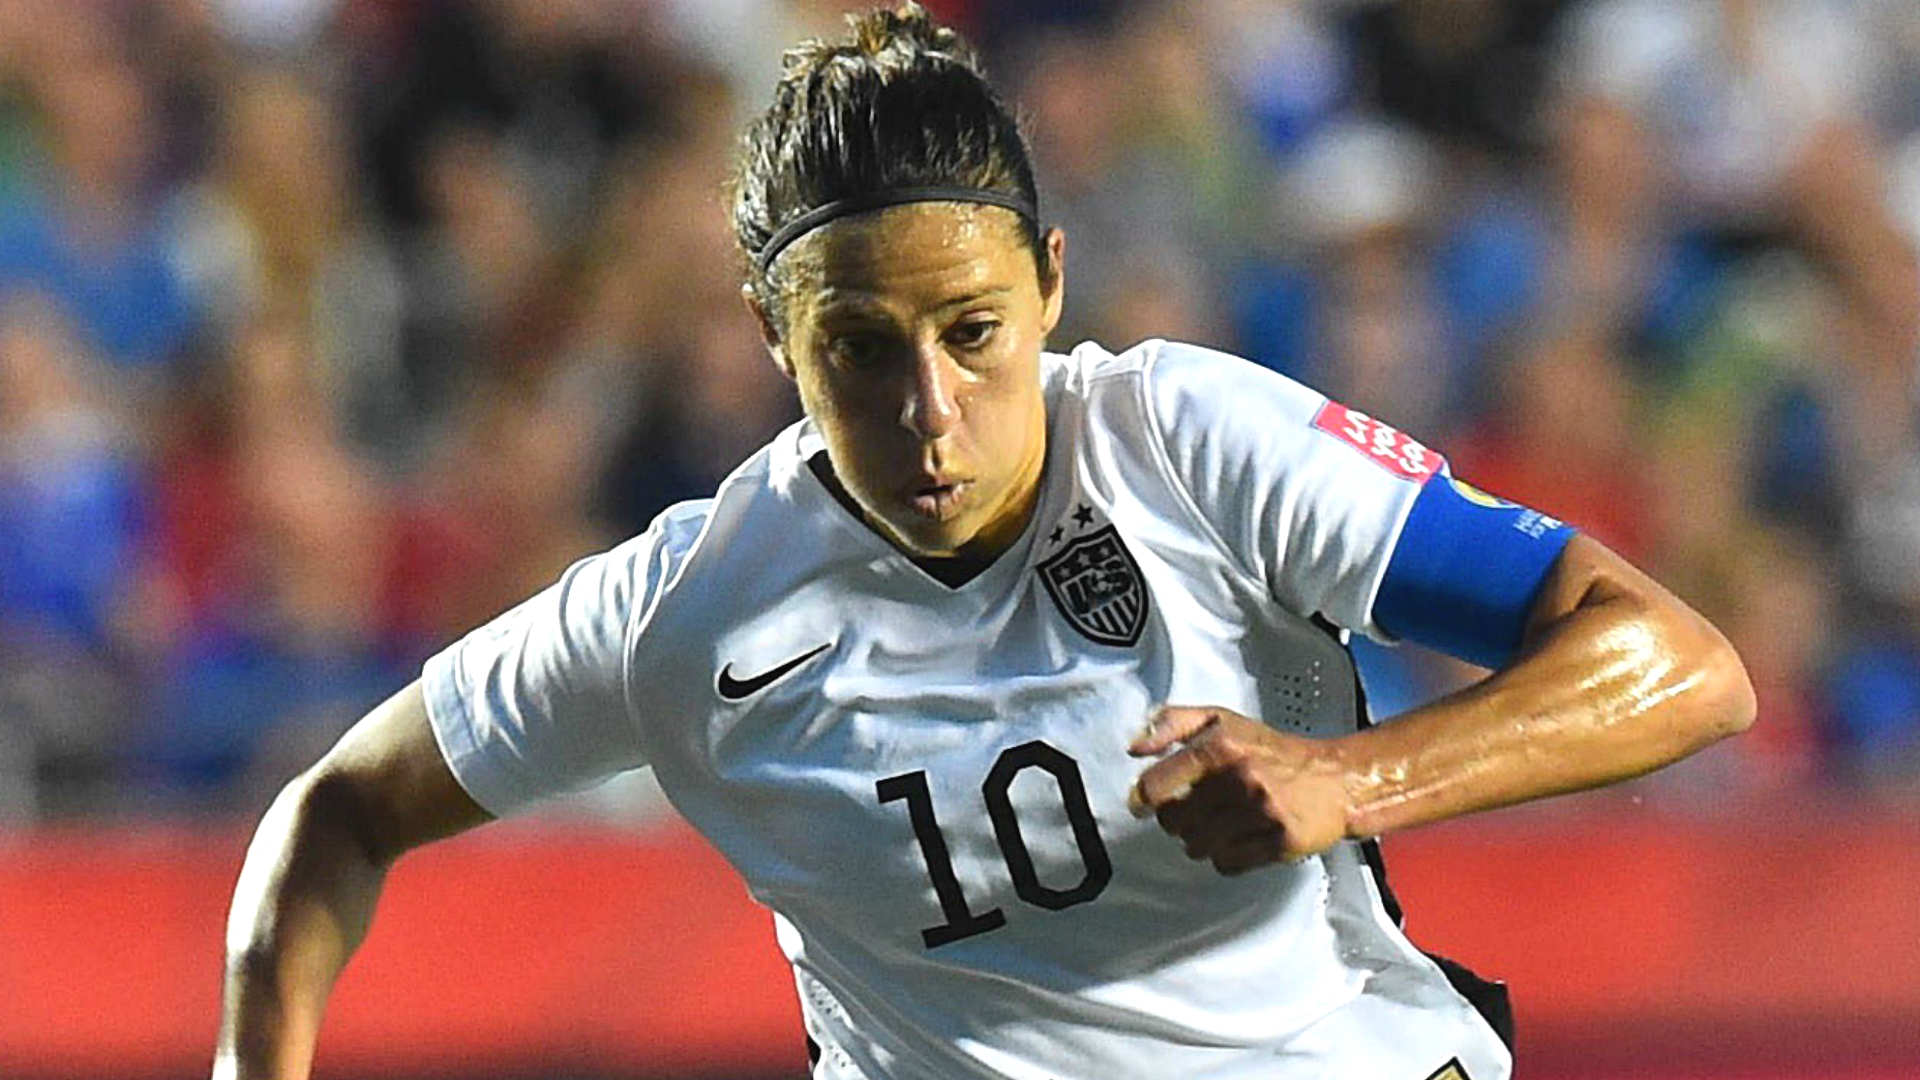 Carli-Lloyd-062615-USNews-Getty-FTR